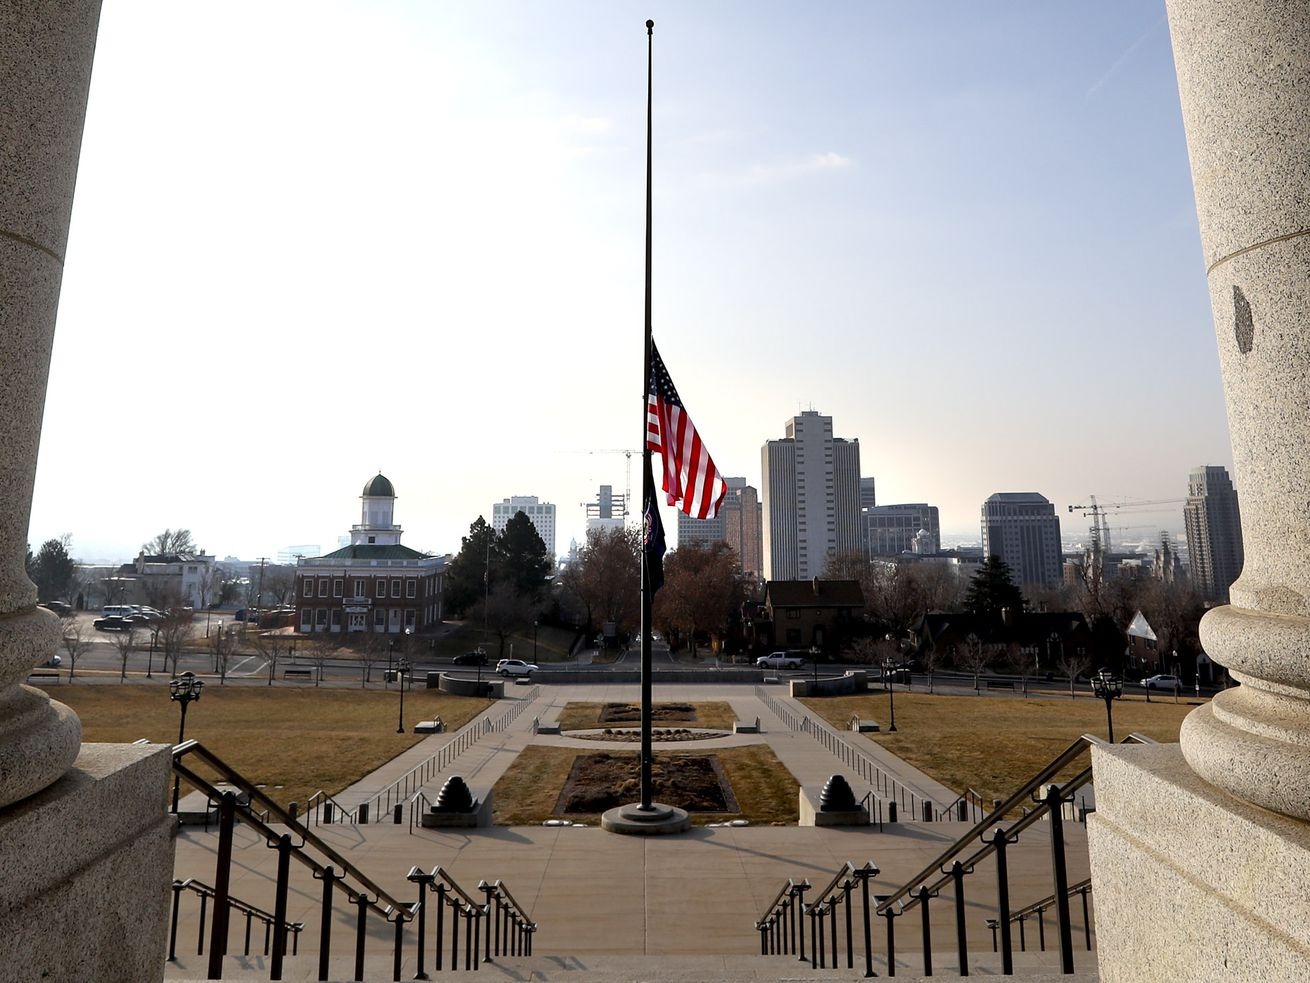 The U.S. and state flag fly at half-staff at the state Capitol in Salt Lake City on Monday, Jan. 11, 2021, in honor of Capitol Police officer Brian D. Sicknick, who died from injuries he suffered when supporters of President Donald Trump stormed the U.S. Capitol in Washington on Wednesday, Jan. 6, 2021.